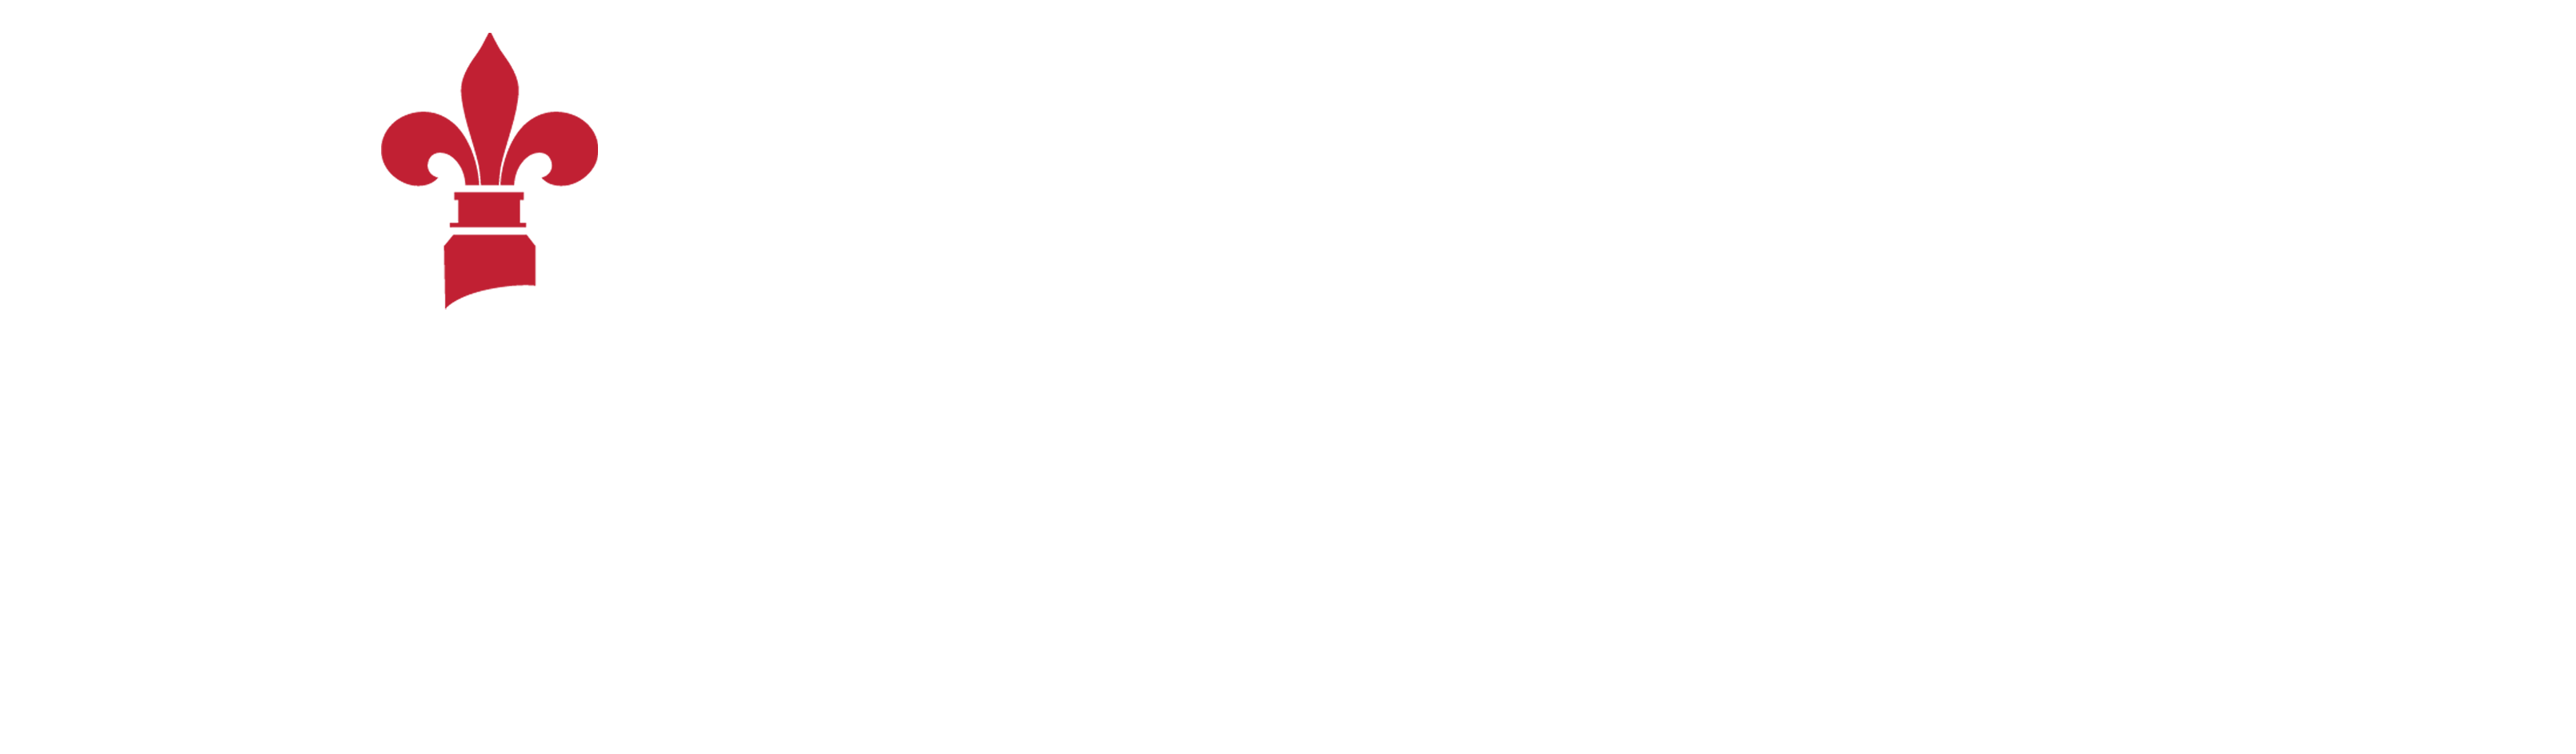 City Bank & Trust Company